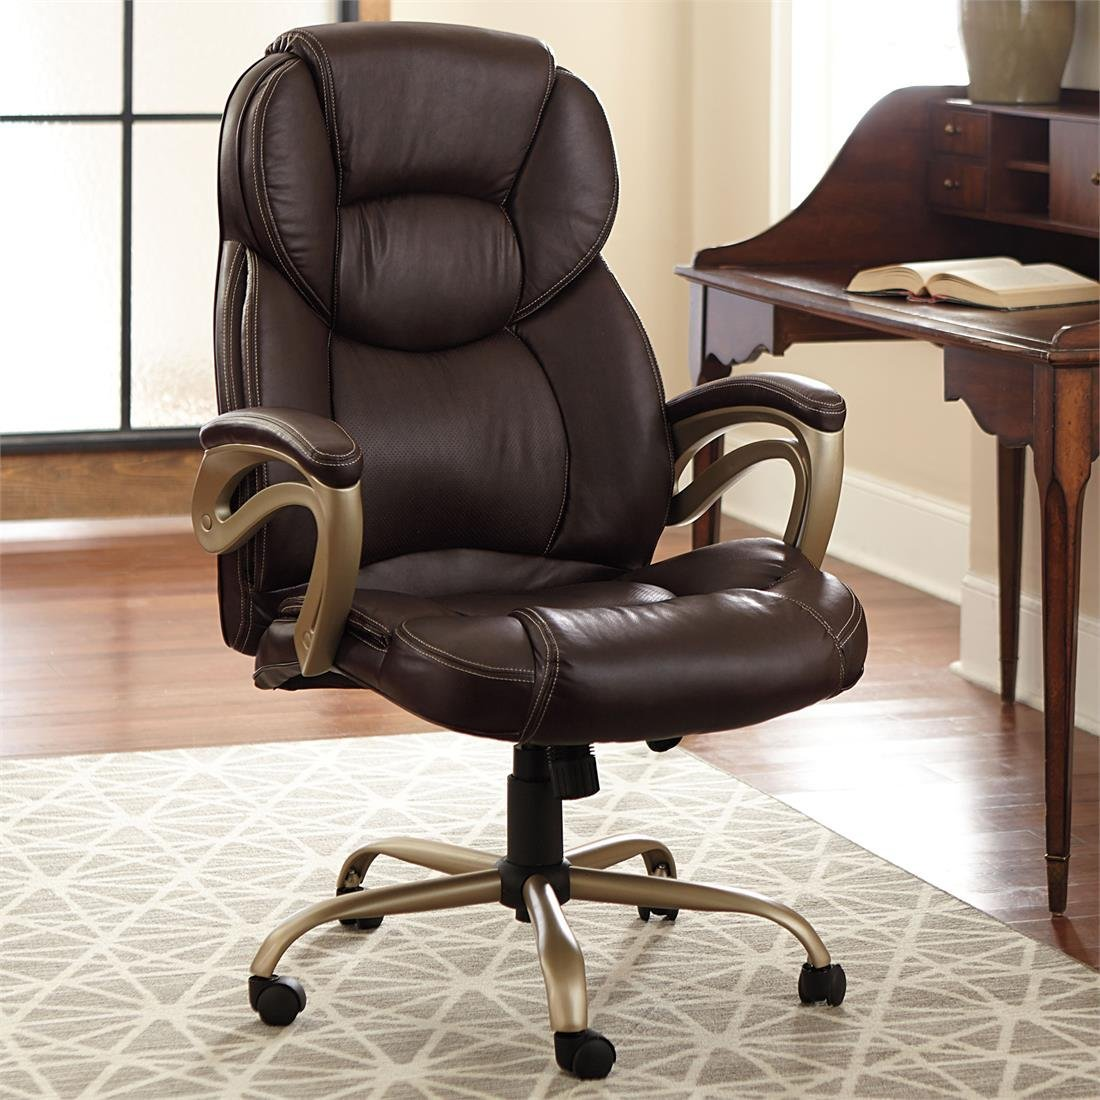 durable pvc home office chair. brylanehome extra wide memory foam office chair durable pvc home